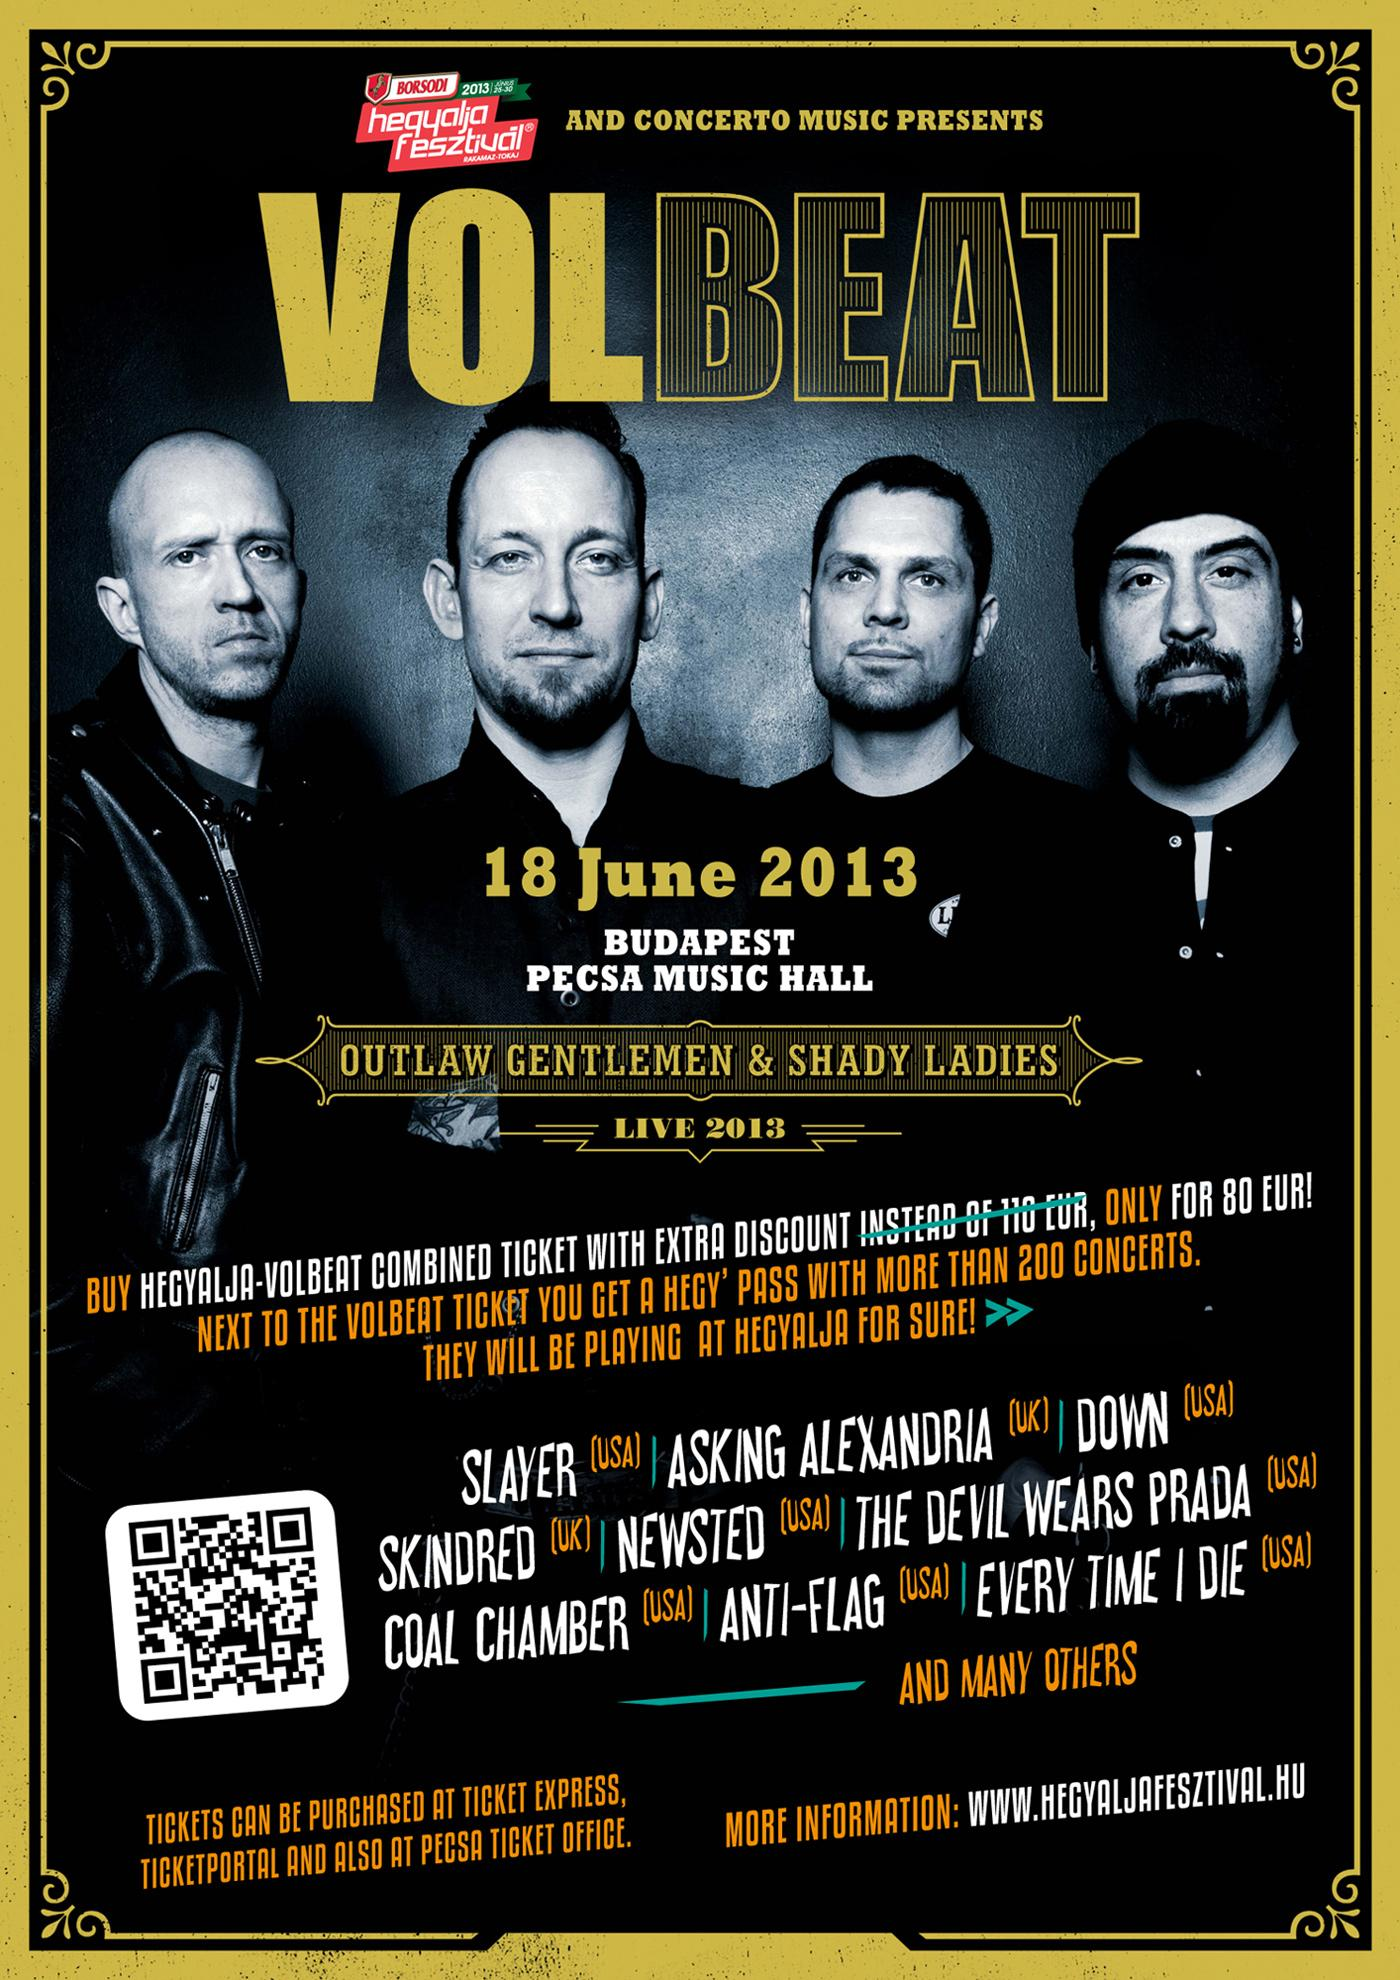 Volbeat & Hegyalja Festival Combined Tickets For 35 Euro Off